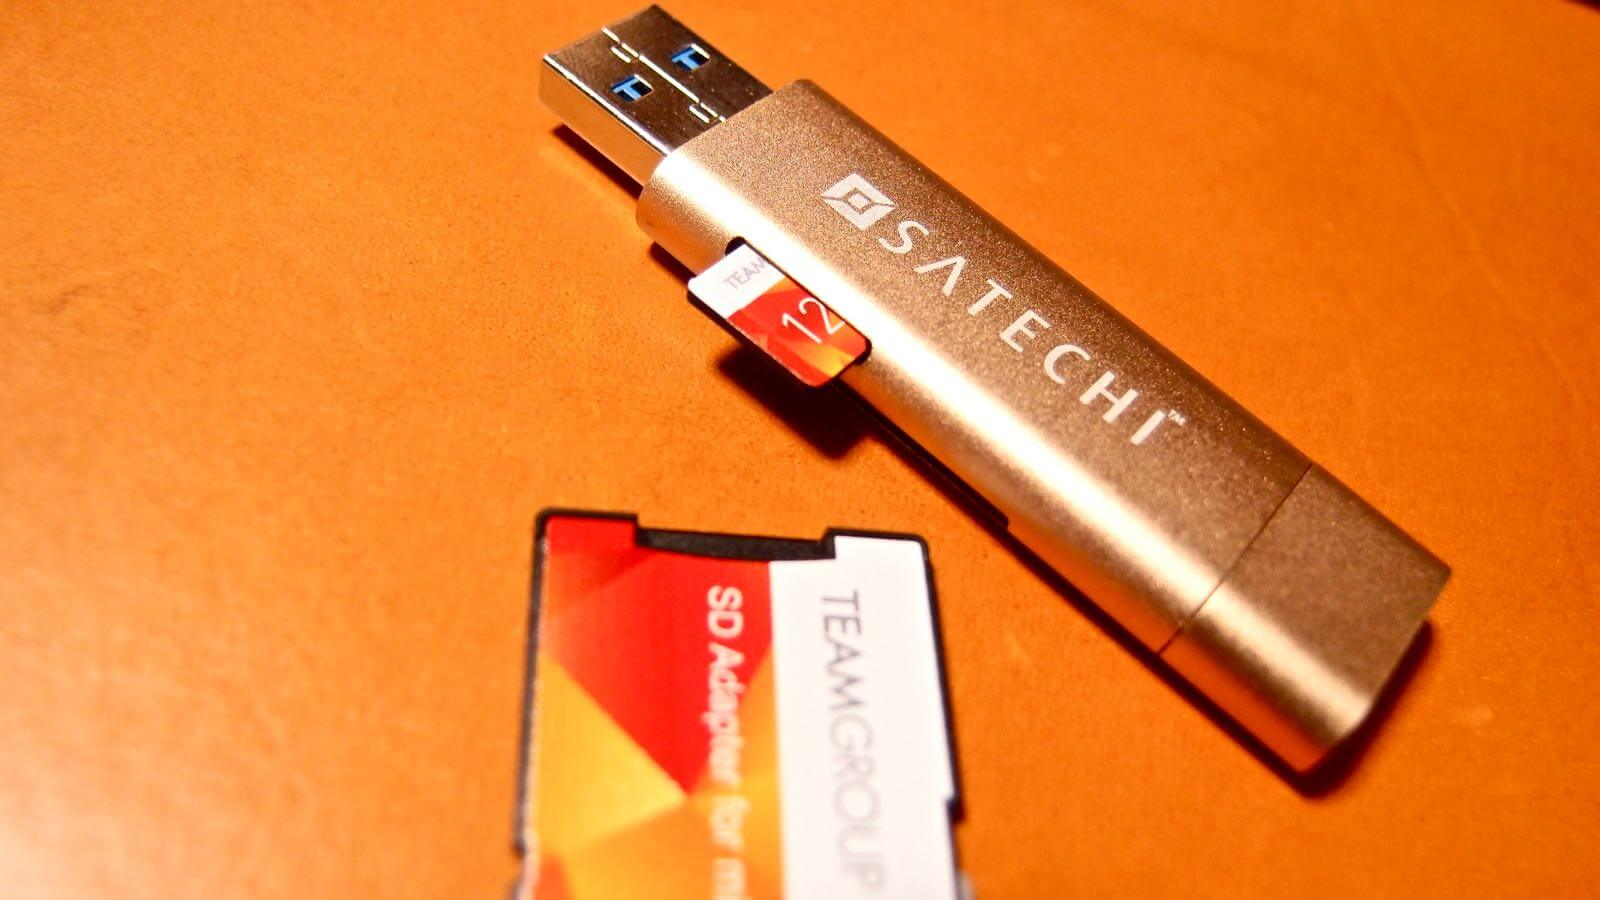 0164 10 SATECHI Type C plus USB3 0 USB Card Reader Review 10